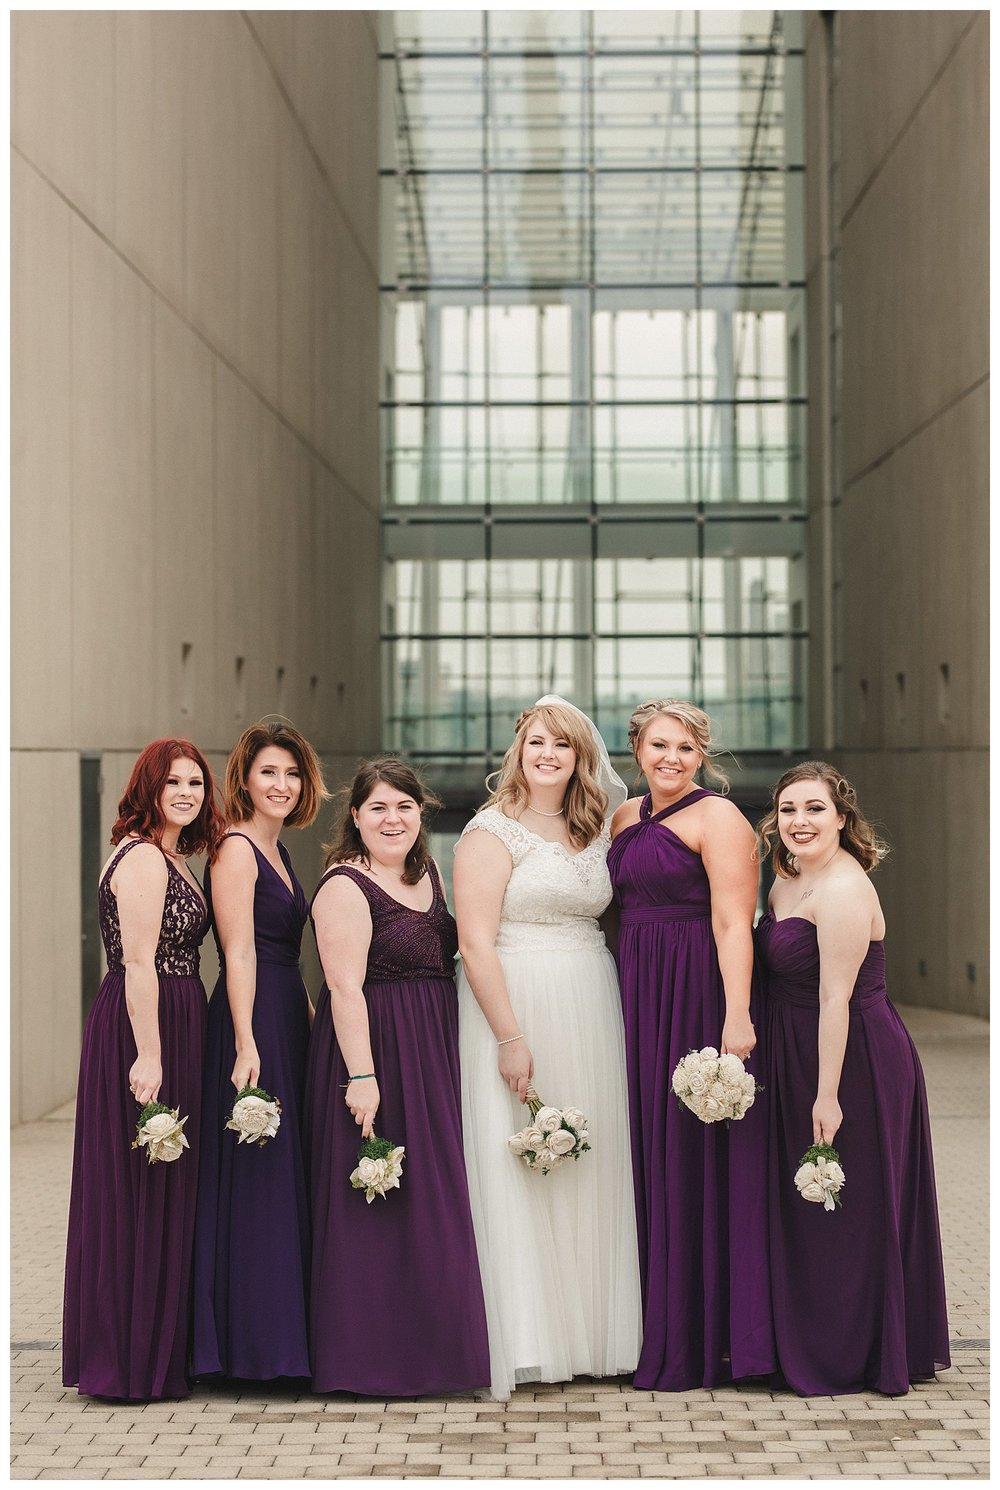 Kelsey_Diane_Photography_Loose_Mansion_Wedding_Photography_Kansas_City_Victor_Lyndsay_0348.jpg